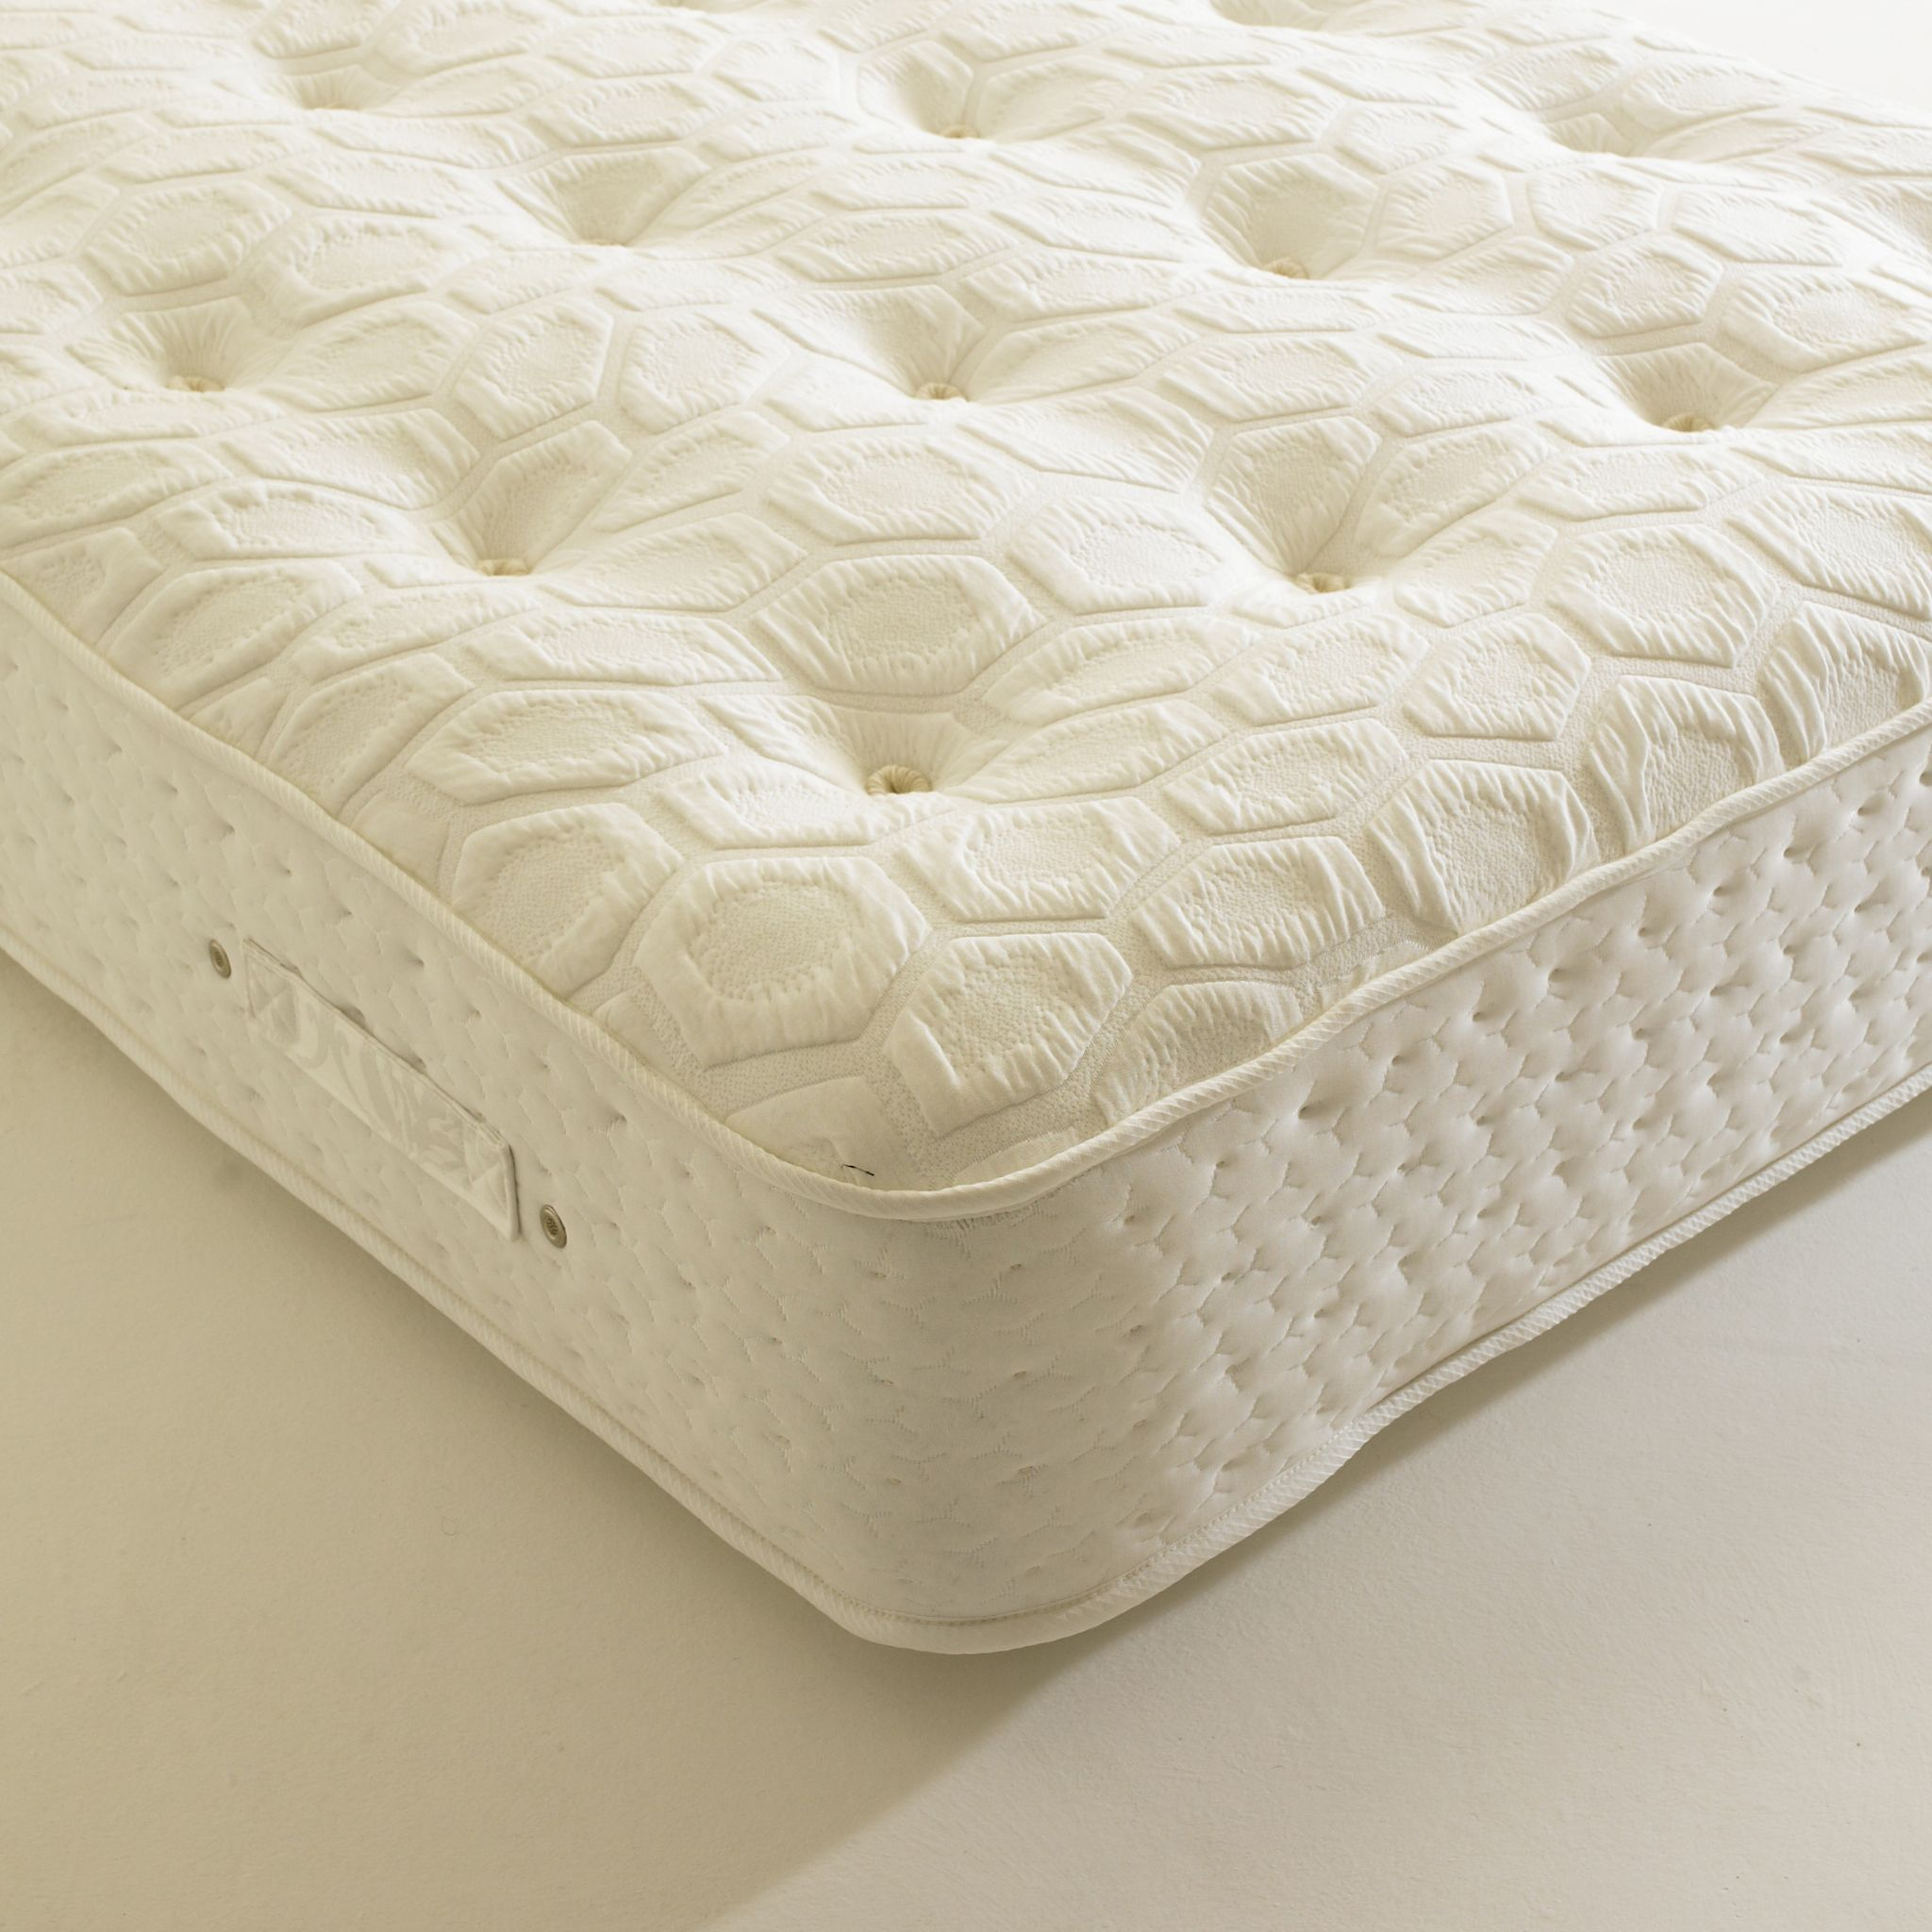 Shire beds eco snug 3000 pocket sprung single 3ft mattress for 3ft single divan bed with mattress